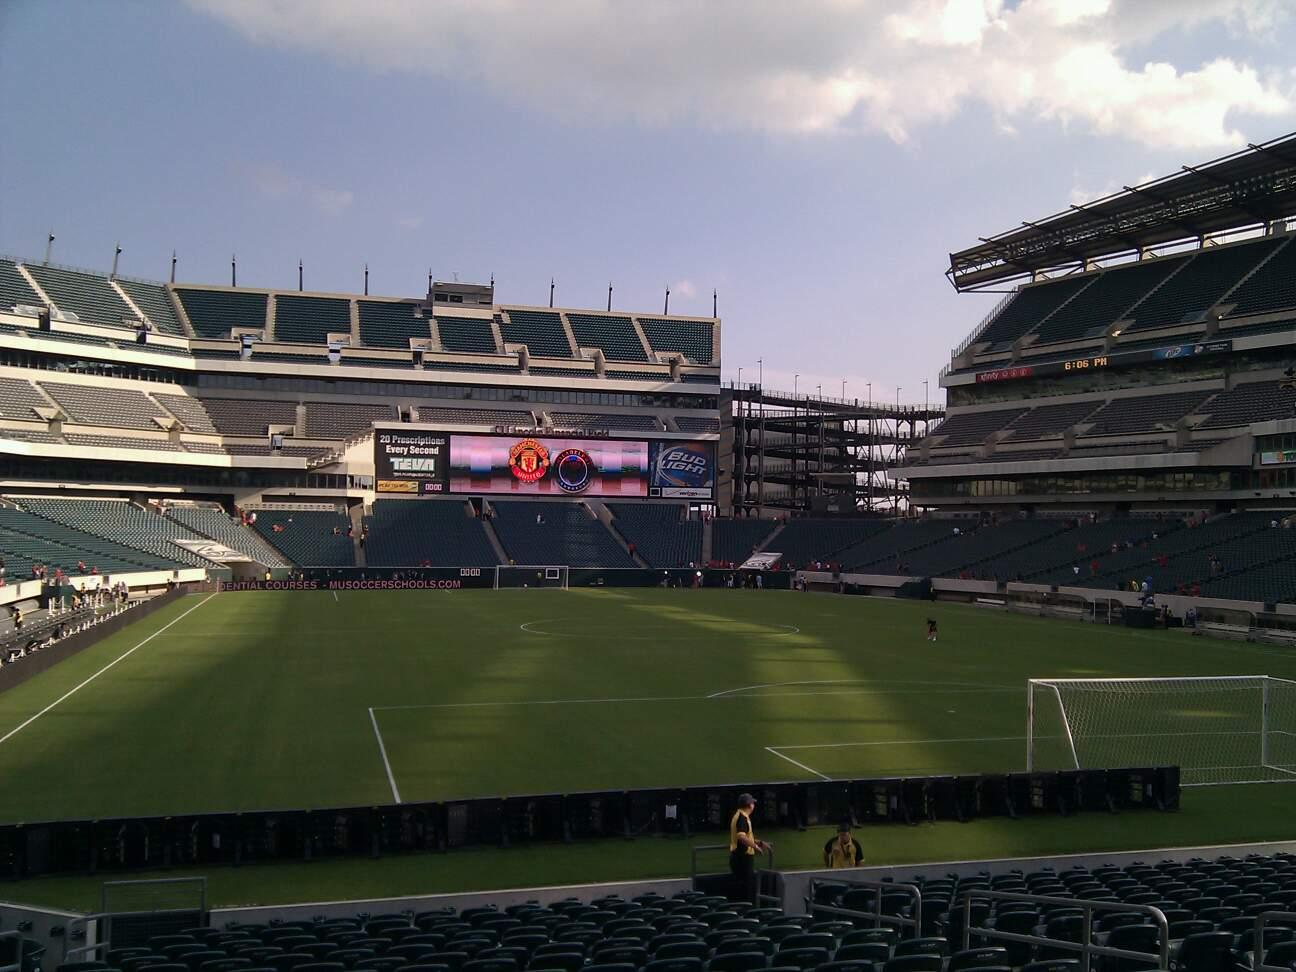 Lincoln Financial Field Section 128 Row 18 Seat 10